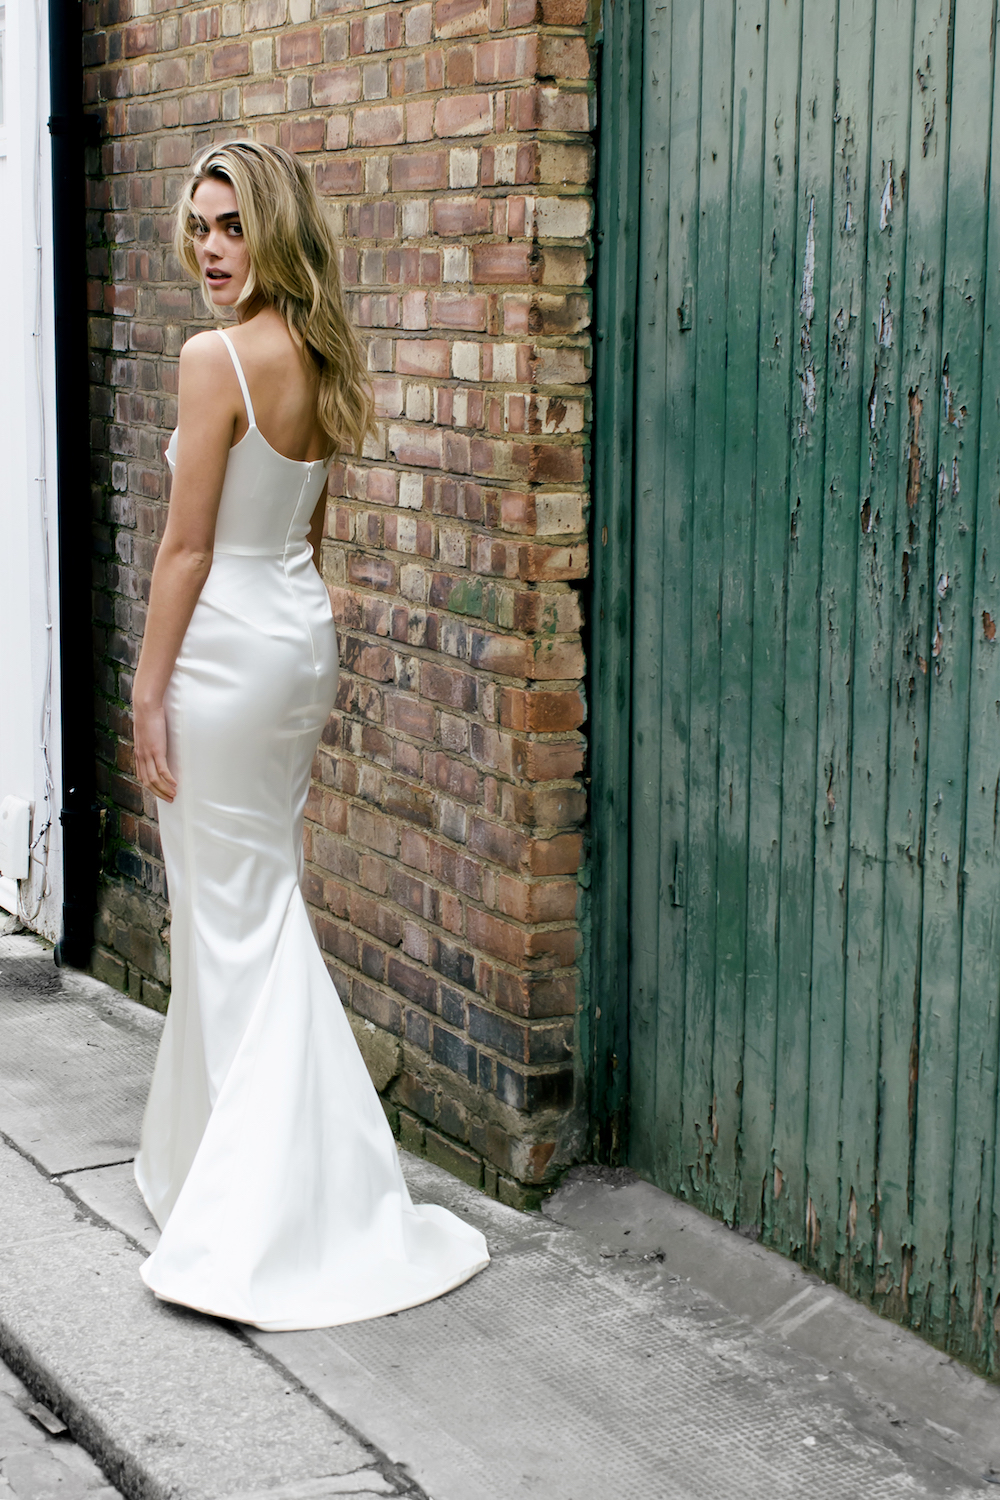 Dion wedding dress by Halfpenny London | Available on Net-A-Porter